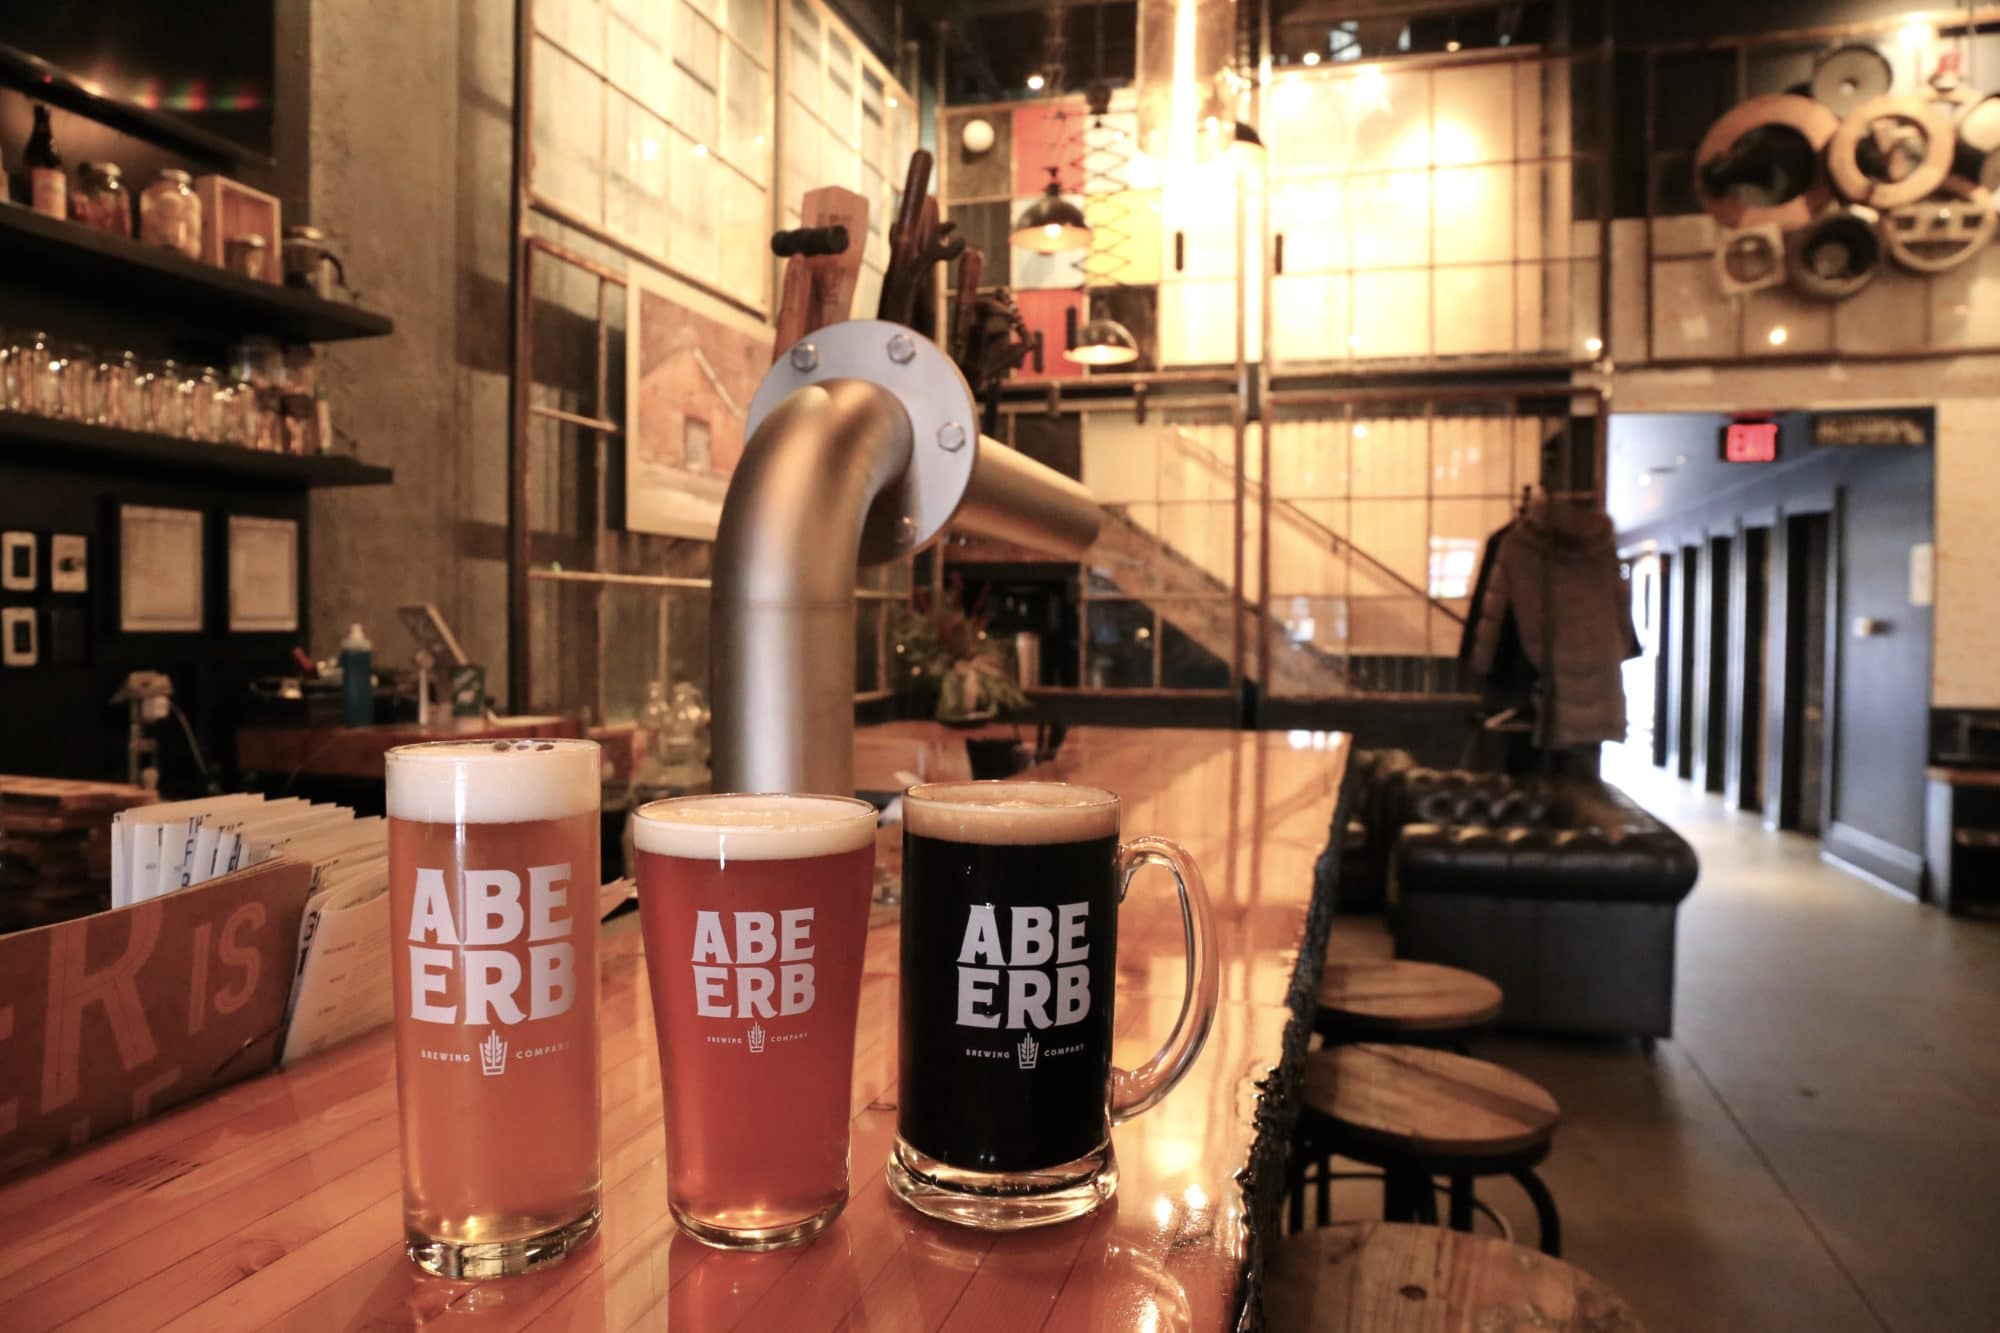 Enjoy a craft beer sampling at Abe Erb Waterloo's brewery and restaurant.